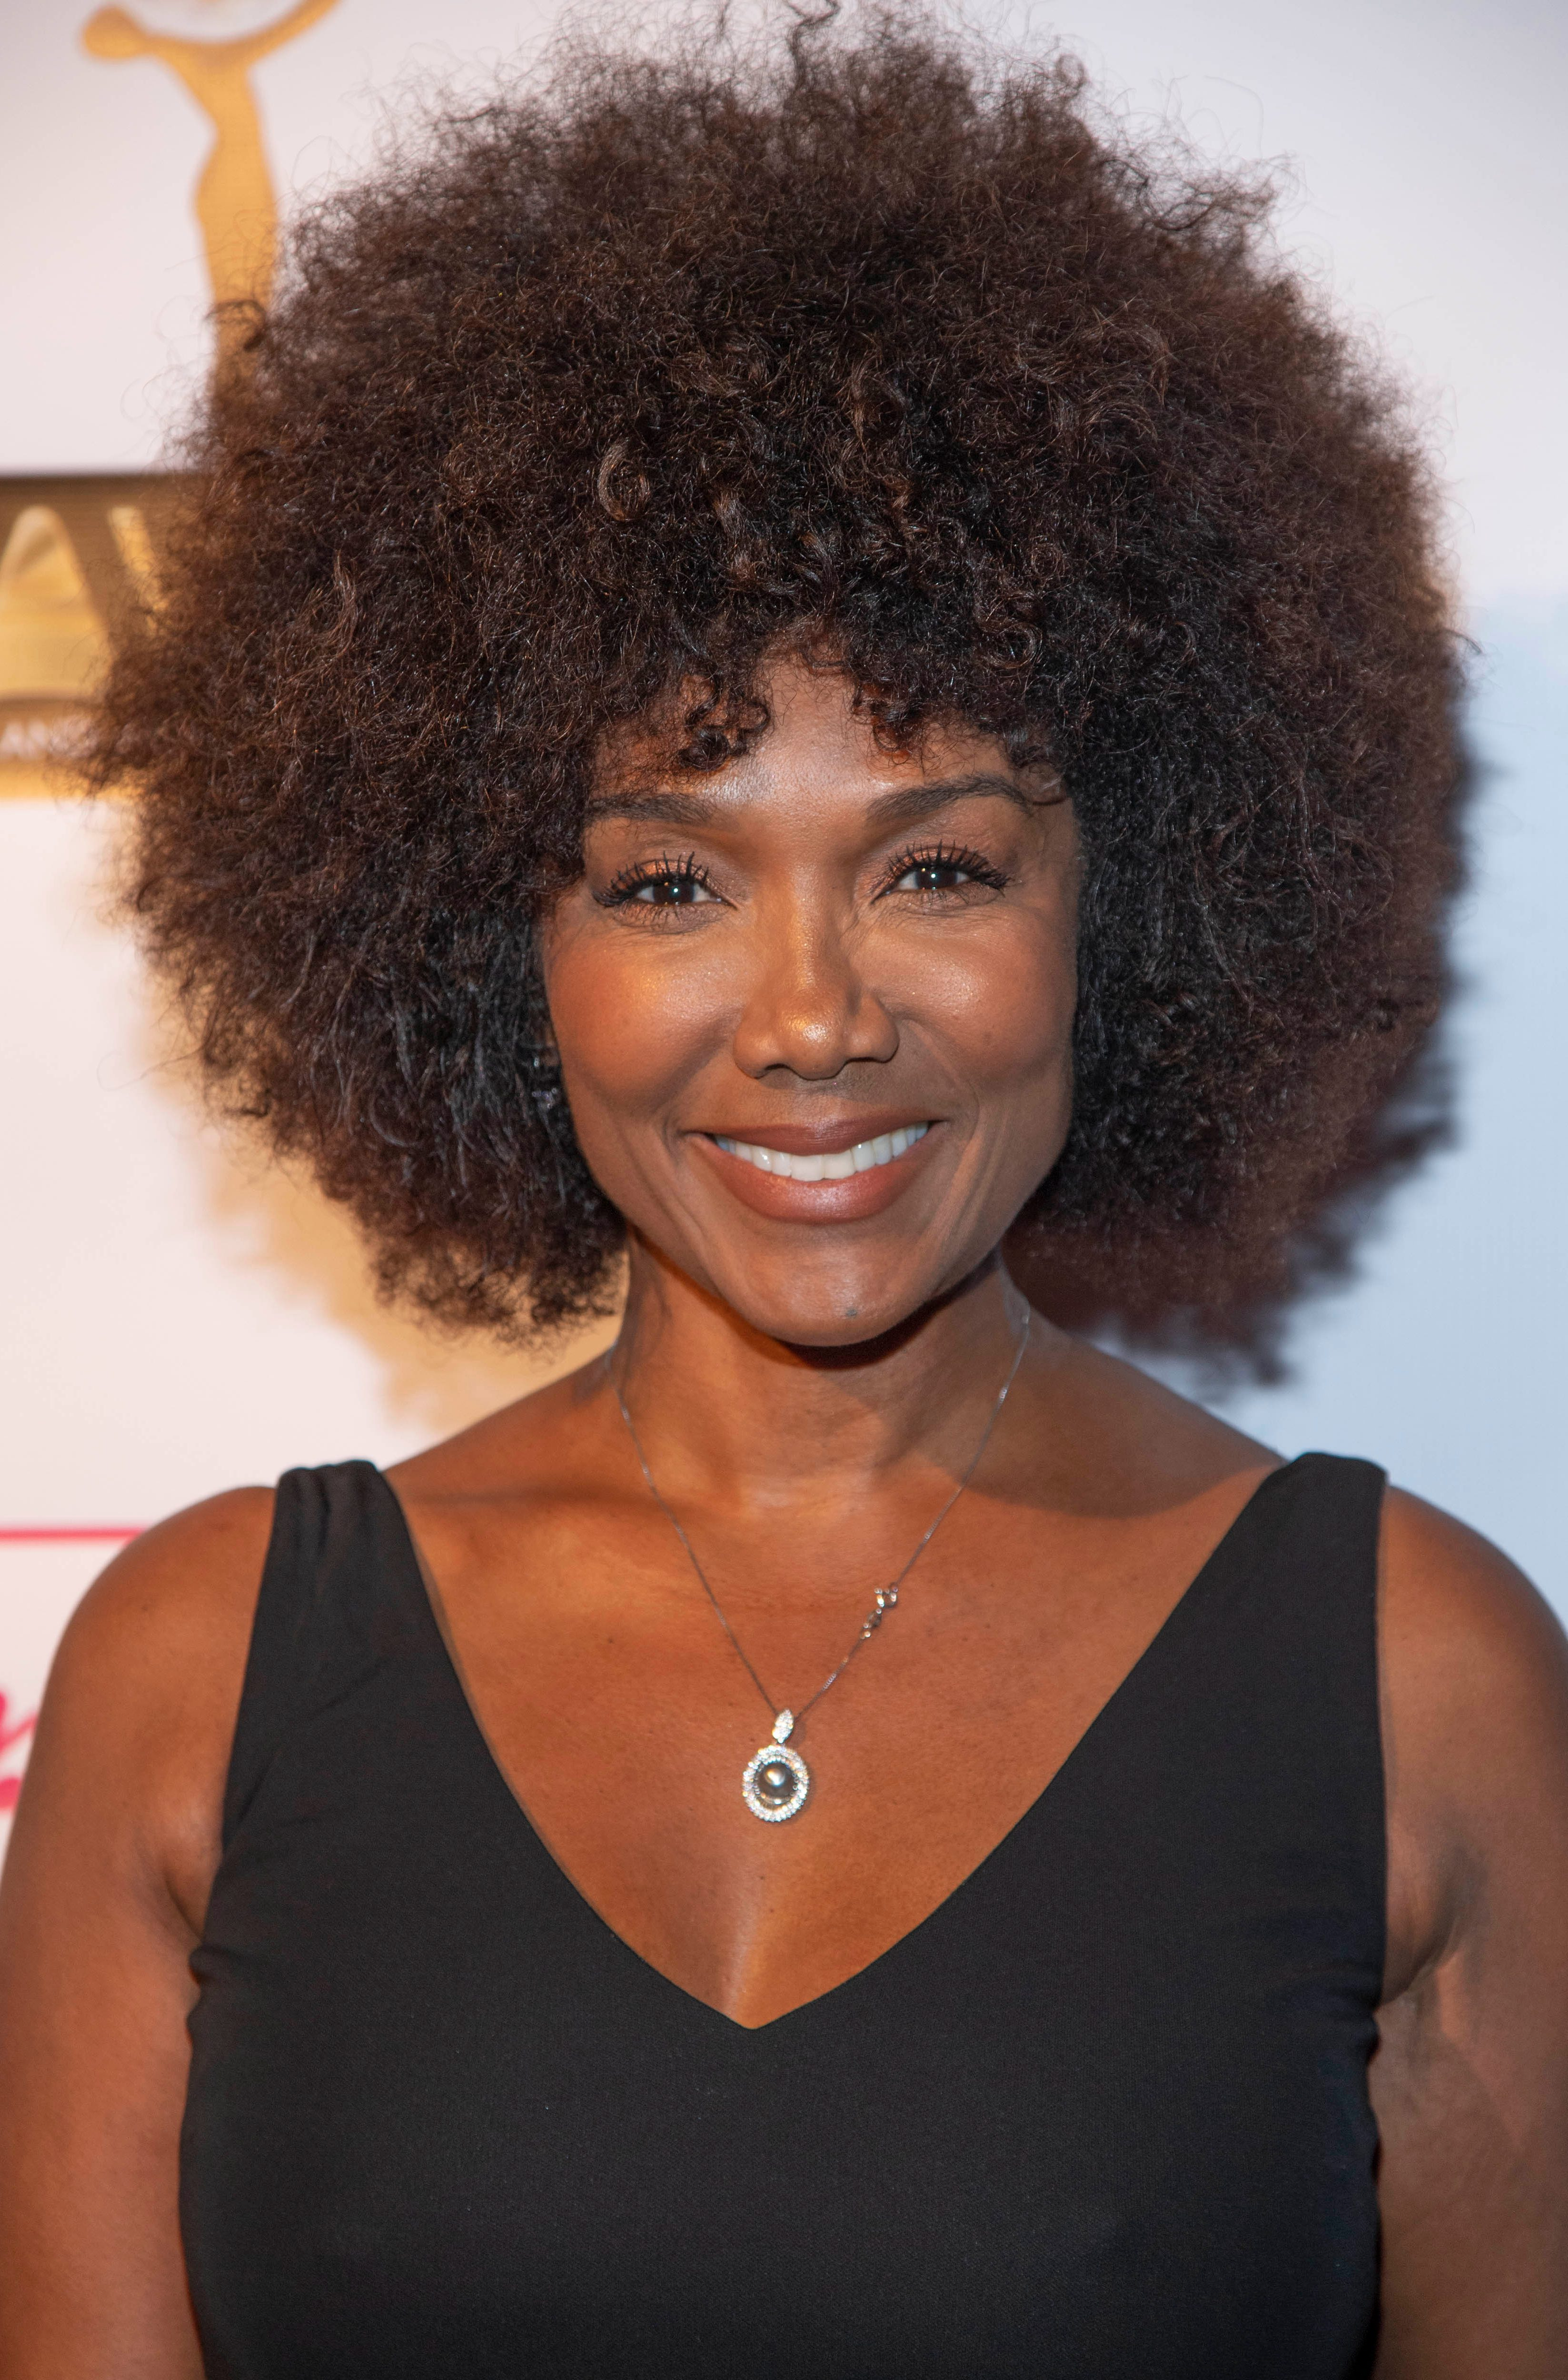 Kimberly Flaunting Her Afro Curled Crown